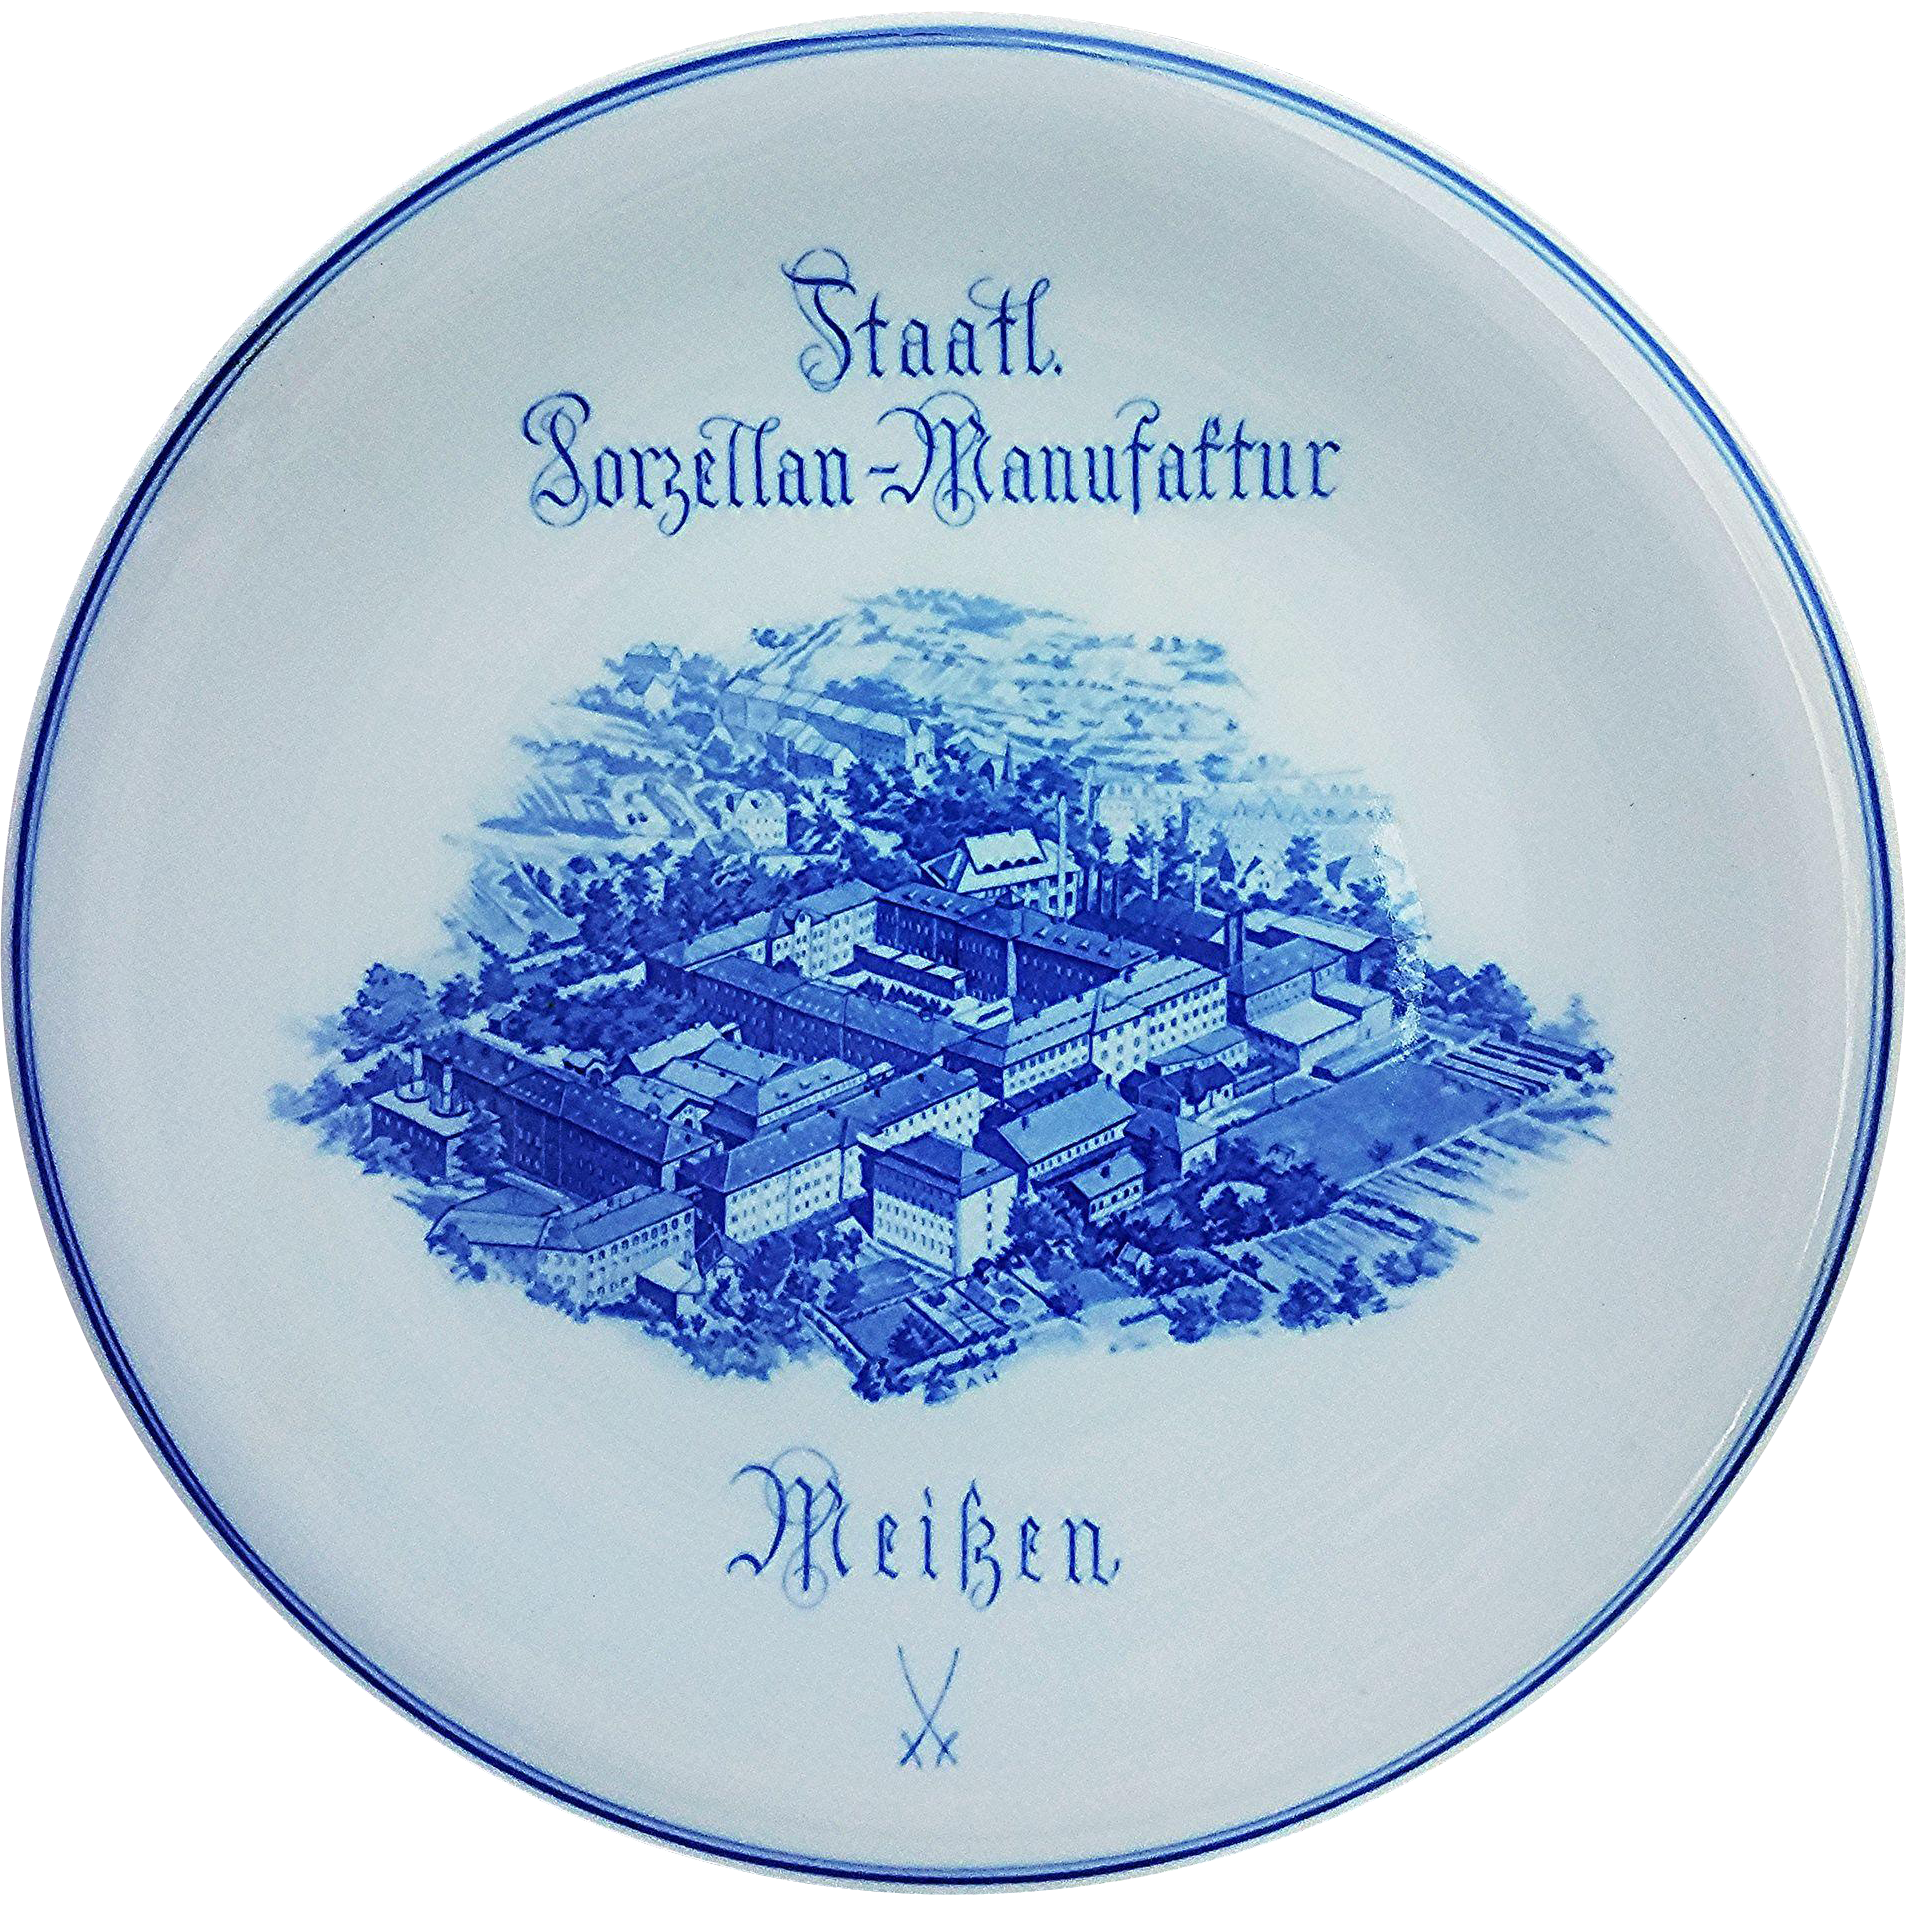 "Wonderful Meissen 1900's Staatl Porzellan-Manufaftur Factory 12-1/8"" Retailer's Advertising Plate"